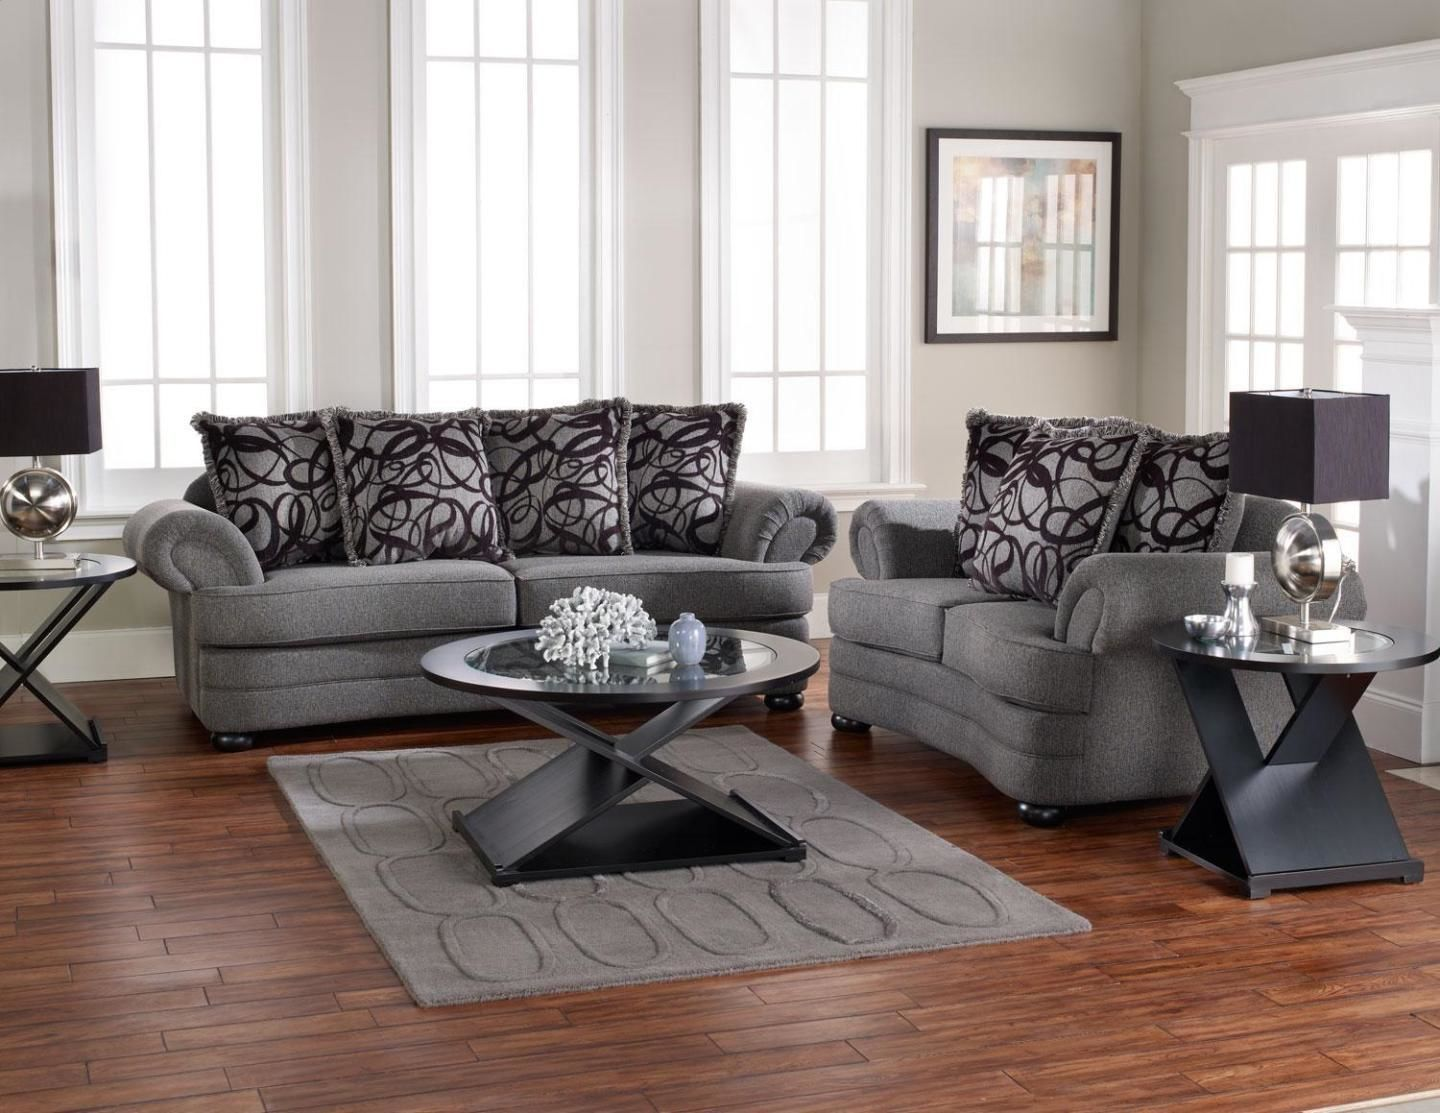 new sectional sofa sizes online-Fascinating Sectional sofa Sizes Plan